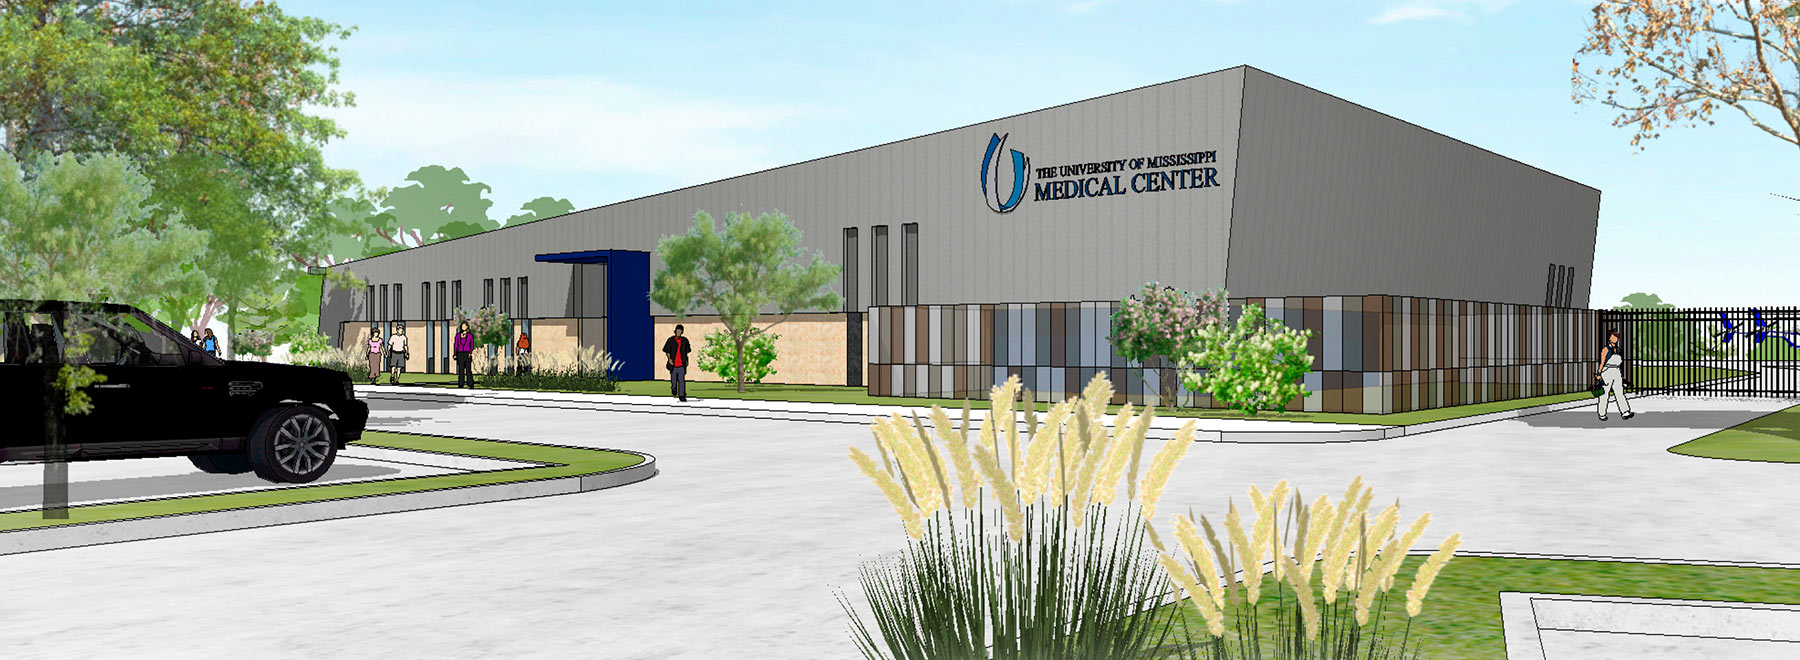 Construction on the 20,000-square-foot Mississippi Center for Emergency Services on the UMMC campus will begin in fall 2018 with an estimation construction timeline of 18 months.